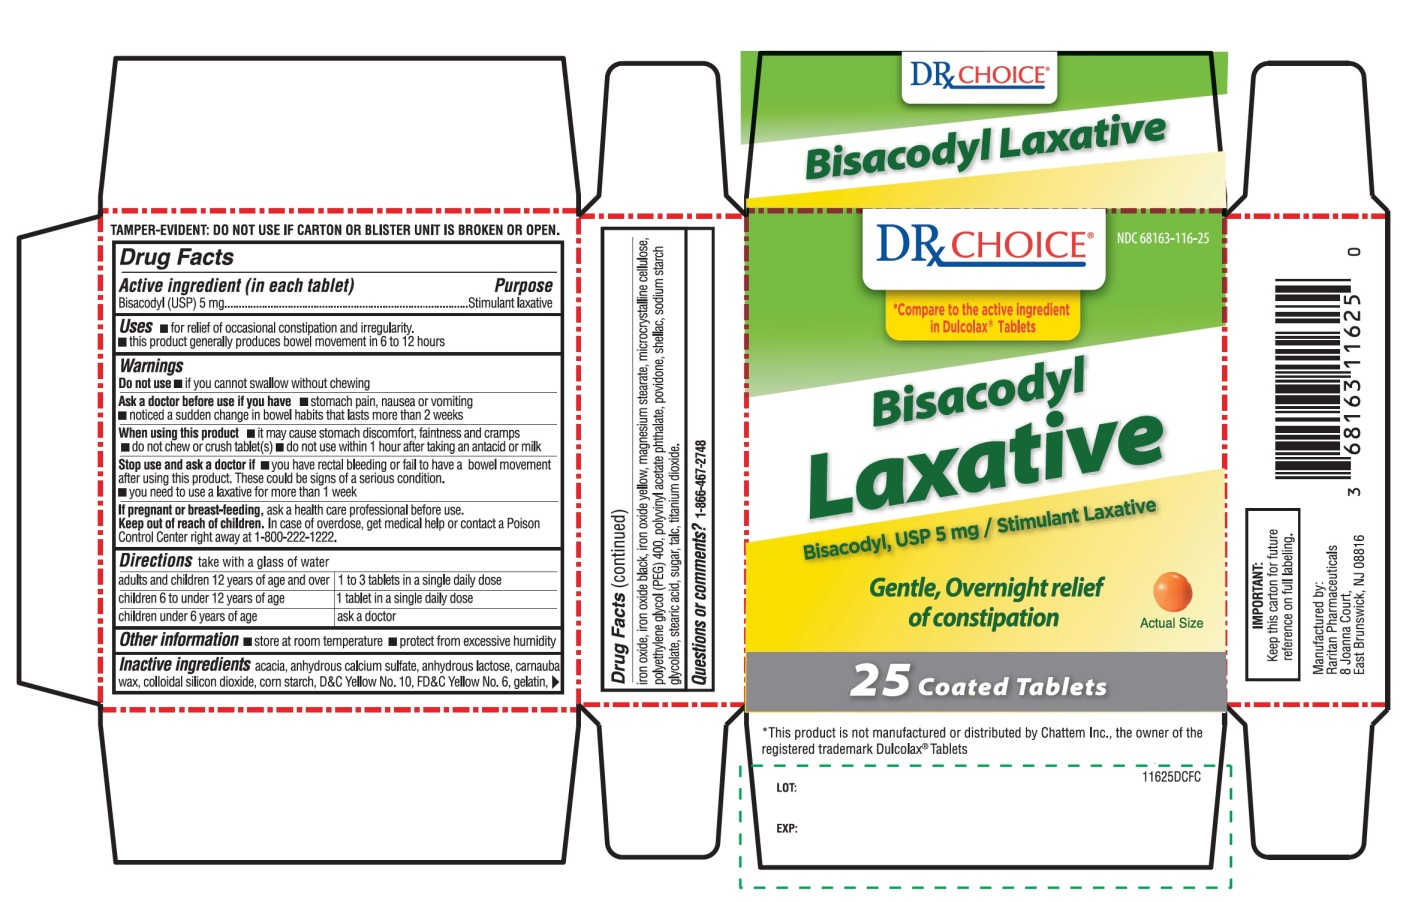 DRx Choice Bisacodyl Laxative